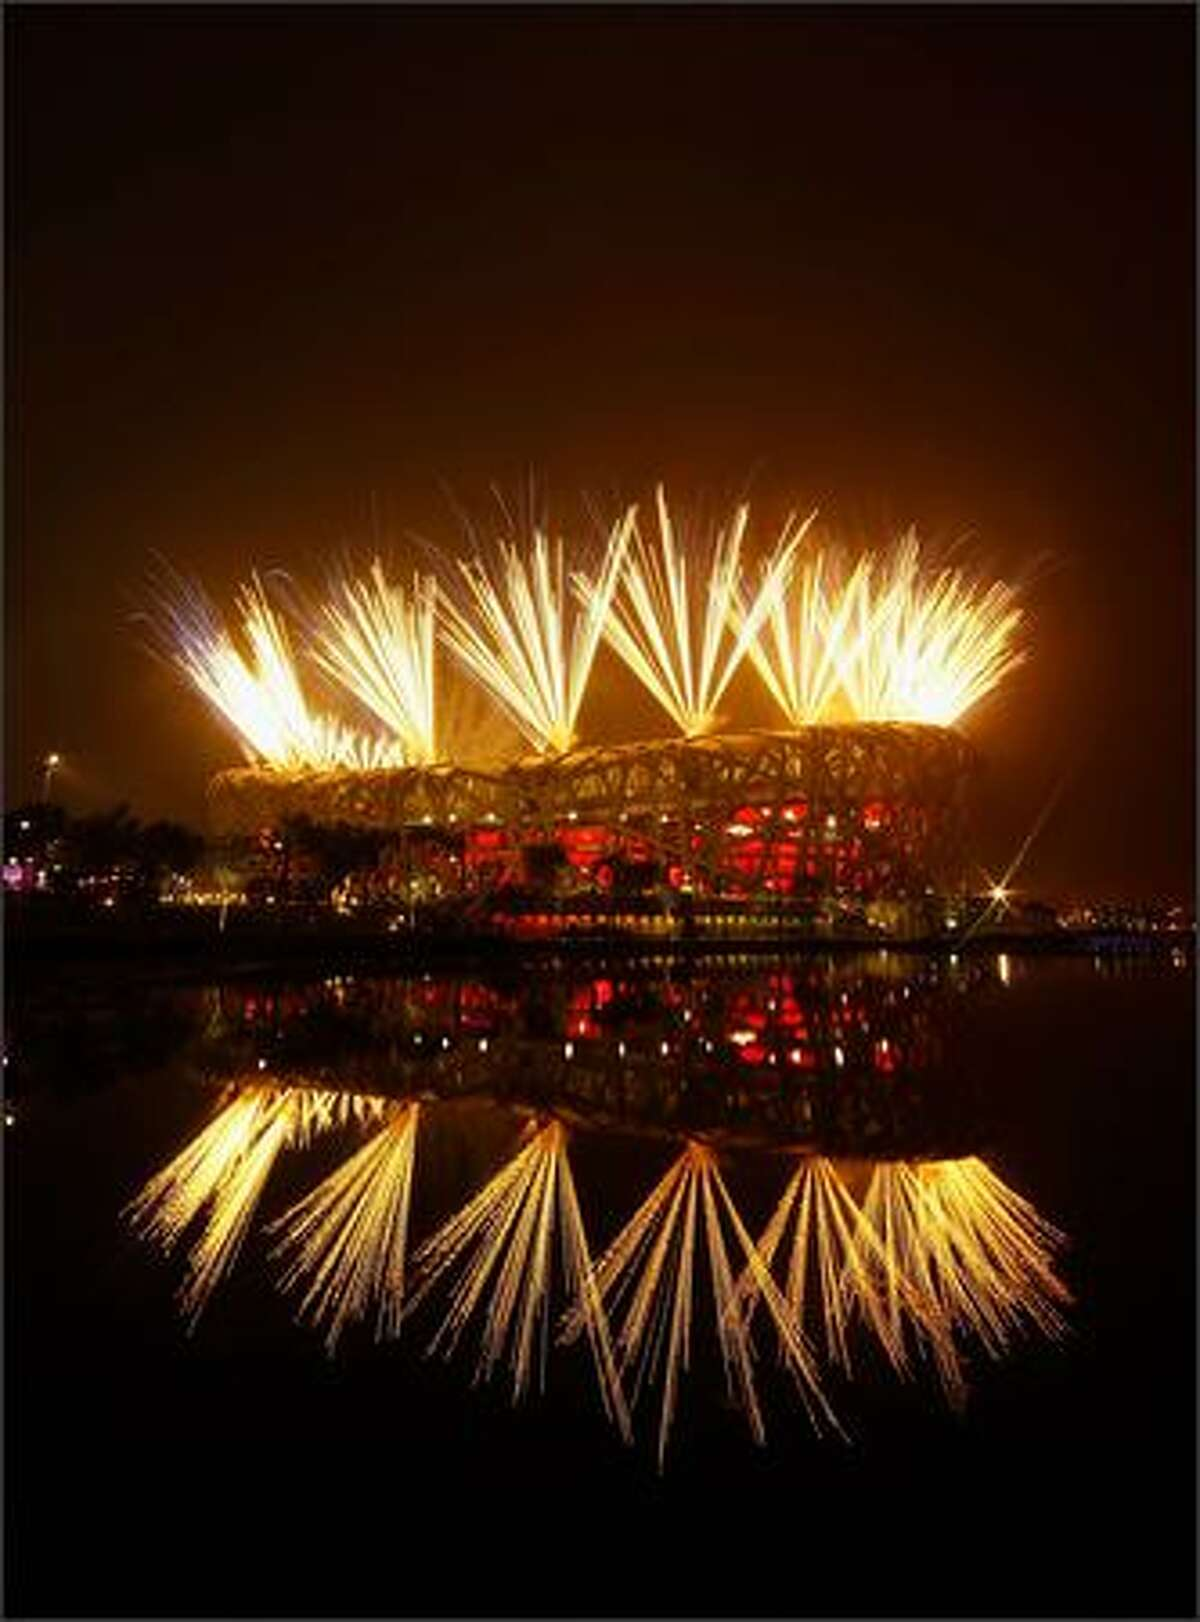 Fireworks light up the National Stadium during the Opening Ceremony for the 2008 Beijing Summer Olympics at the Pond Bridge on August 8, 2008 in Beijing, China. (Photo by Mark Dadswell/Getty Images)